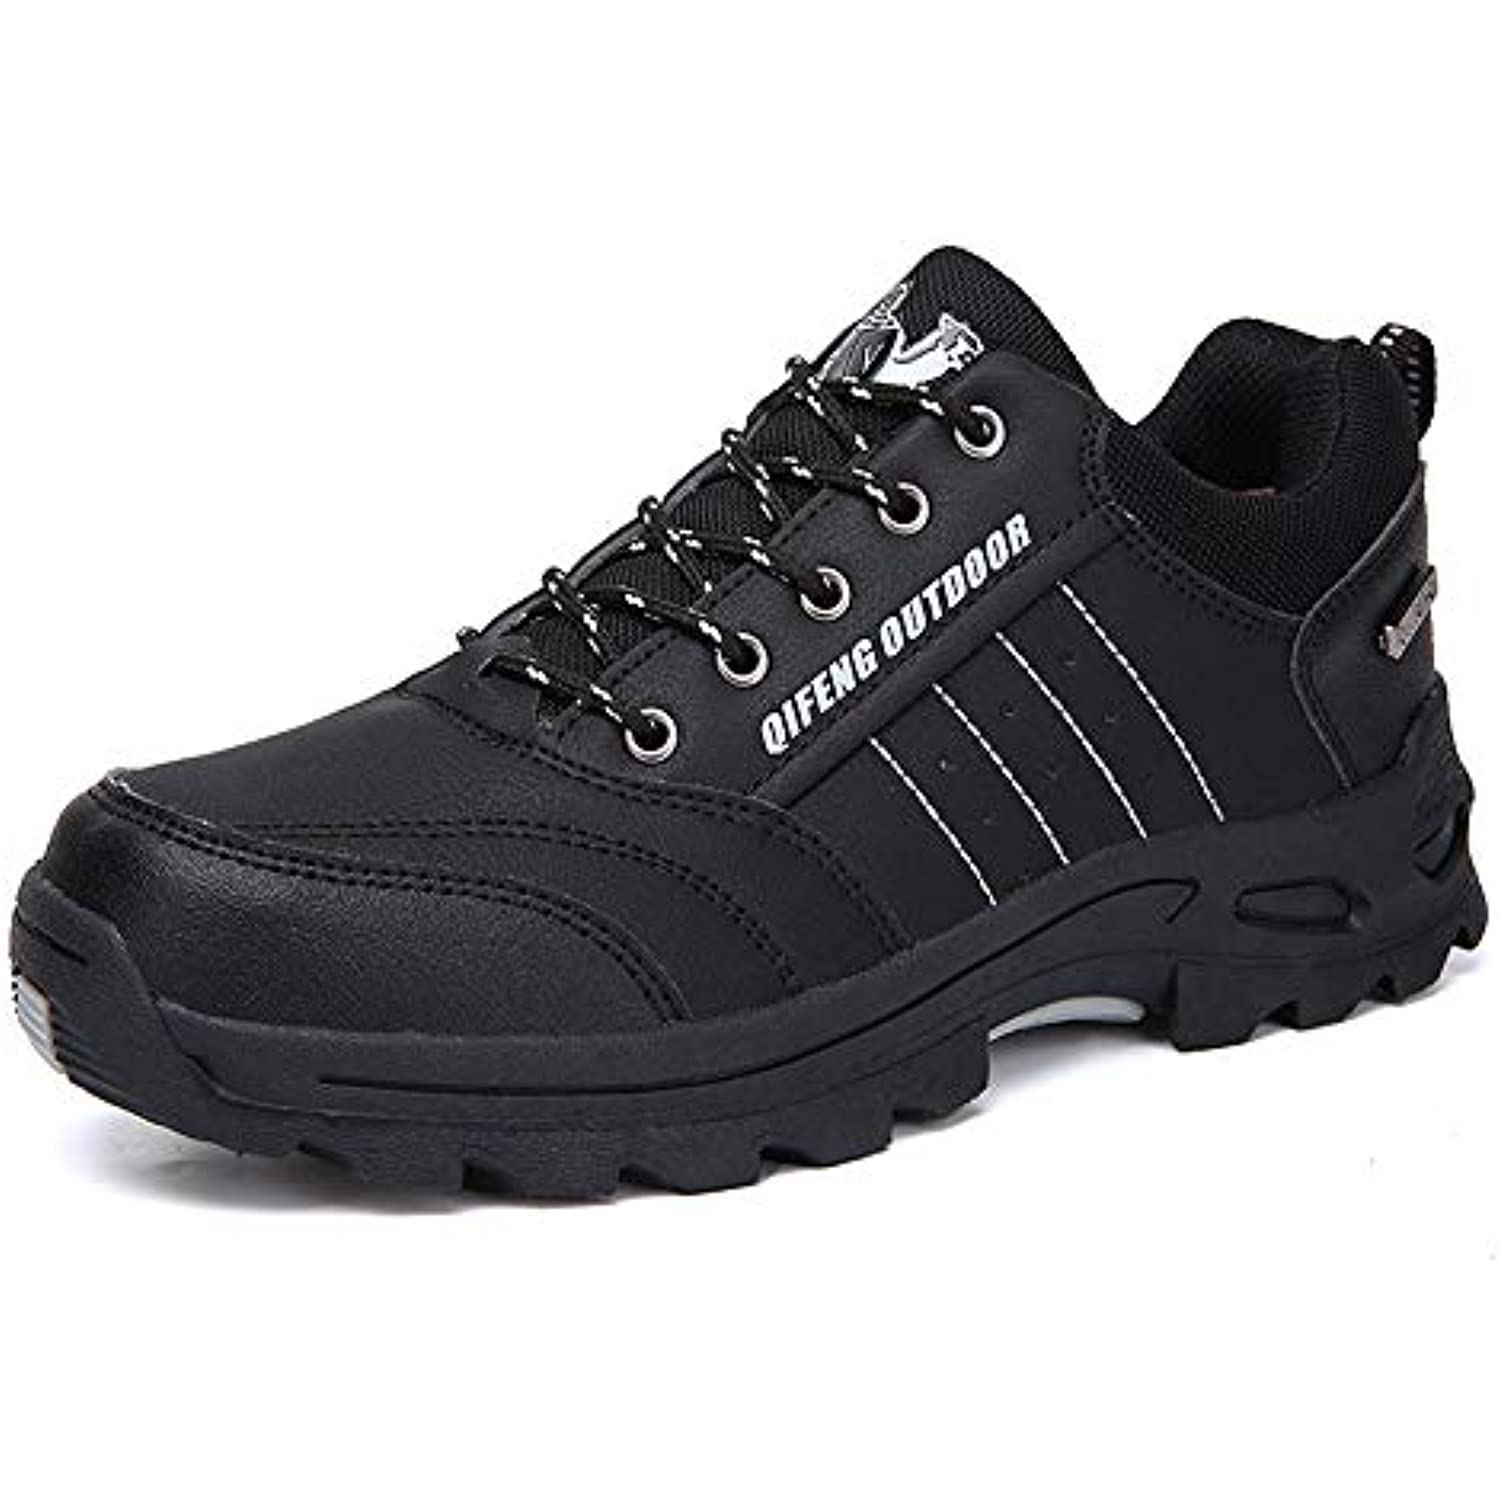 Baskets En Sport Air De Overmal Homme Chaussure Plein 7q14w4